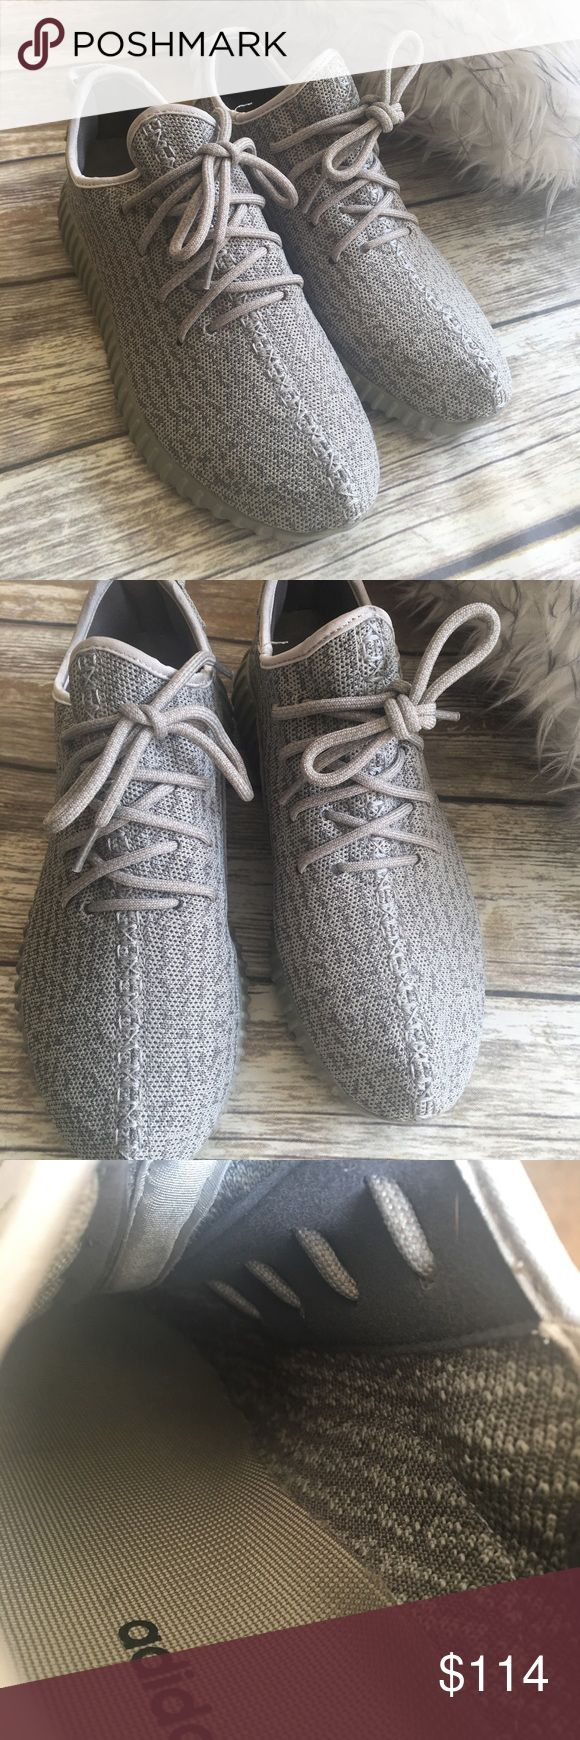 Boost 350- Moonrocks Don't ask the obvious.  UA but good ones! U n a u t h o r I z e d !!! Worn like twice. Super clean bottoms. The uppers are in perfect condition. See pics.  No I will not text you or email you.  All business on poshmark only Yeezy Shoes Athletic Shoes